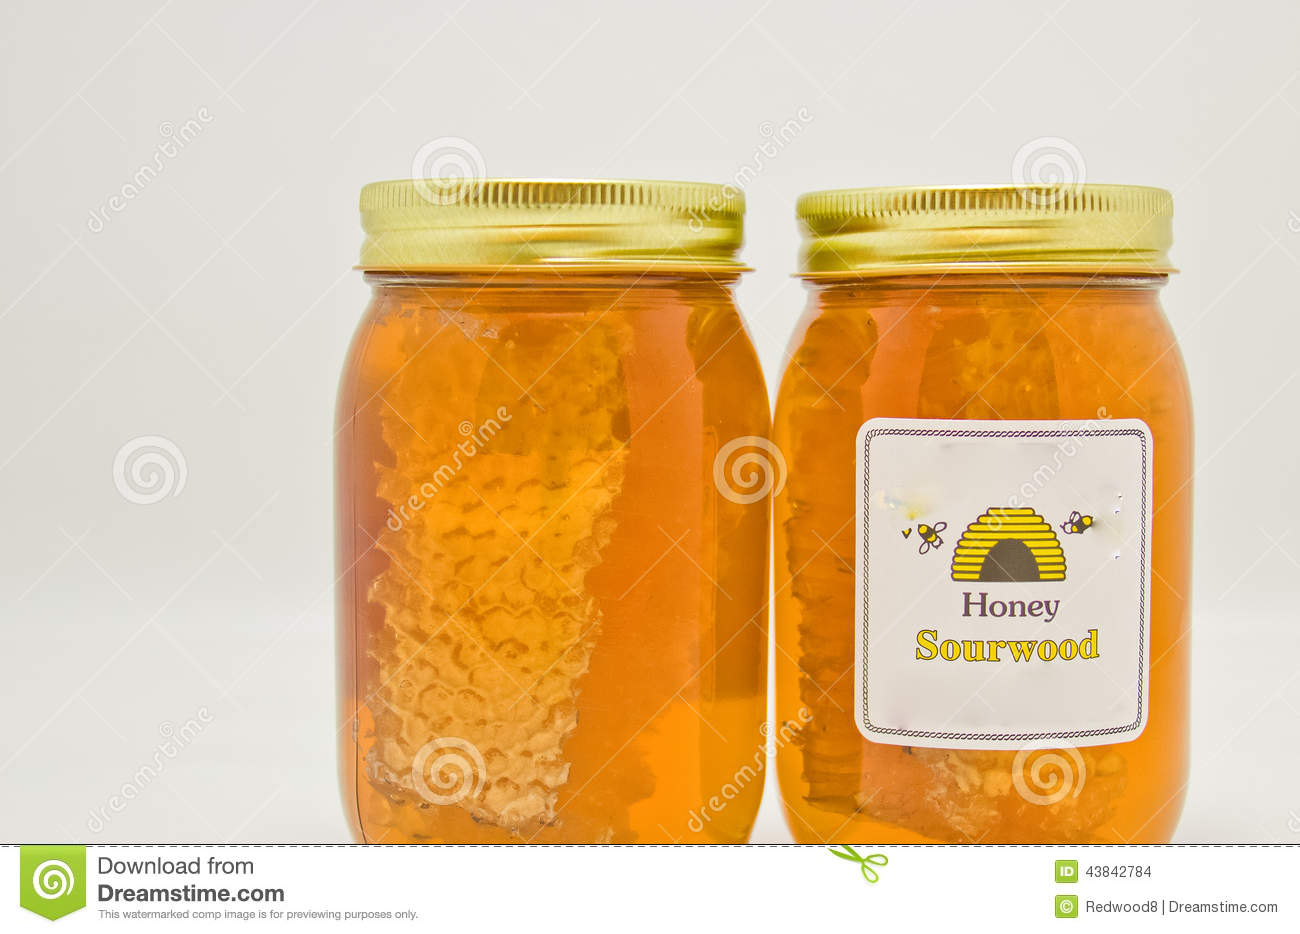 Sour wood honey in clear glass jars along with honeycomb.